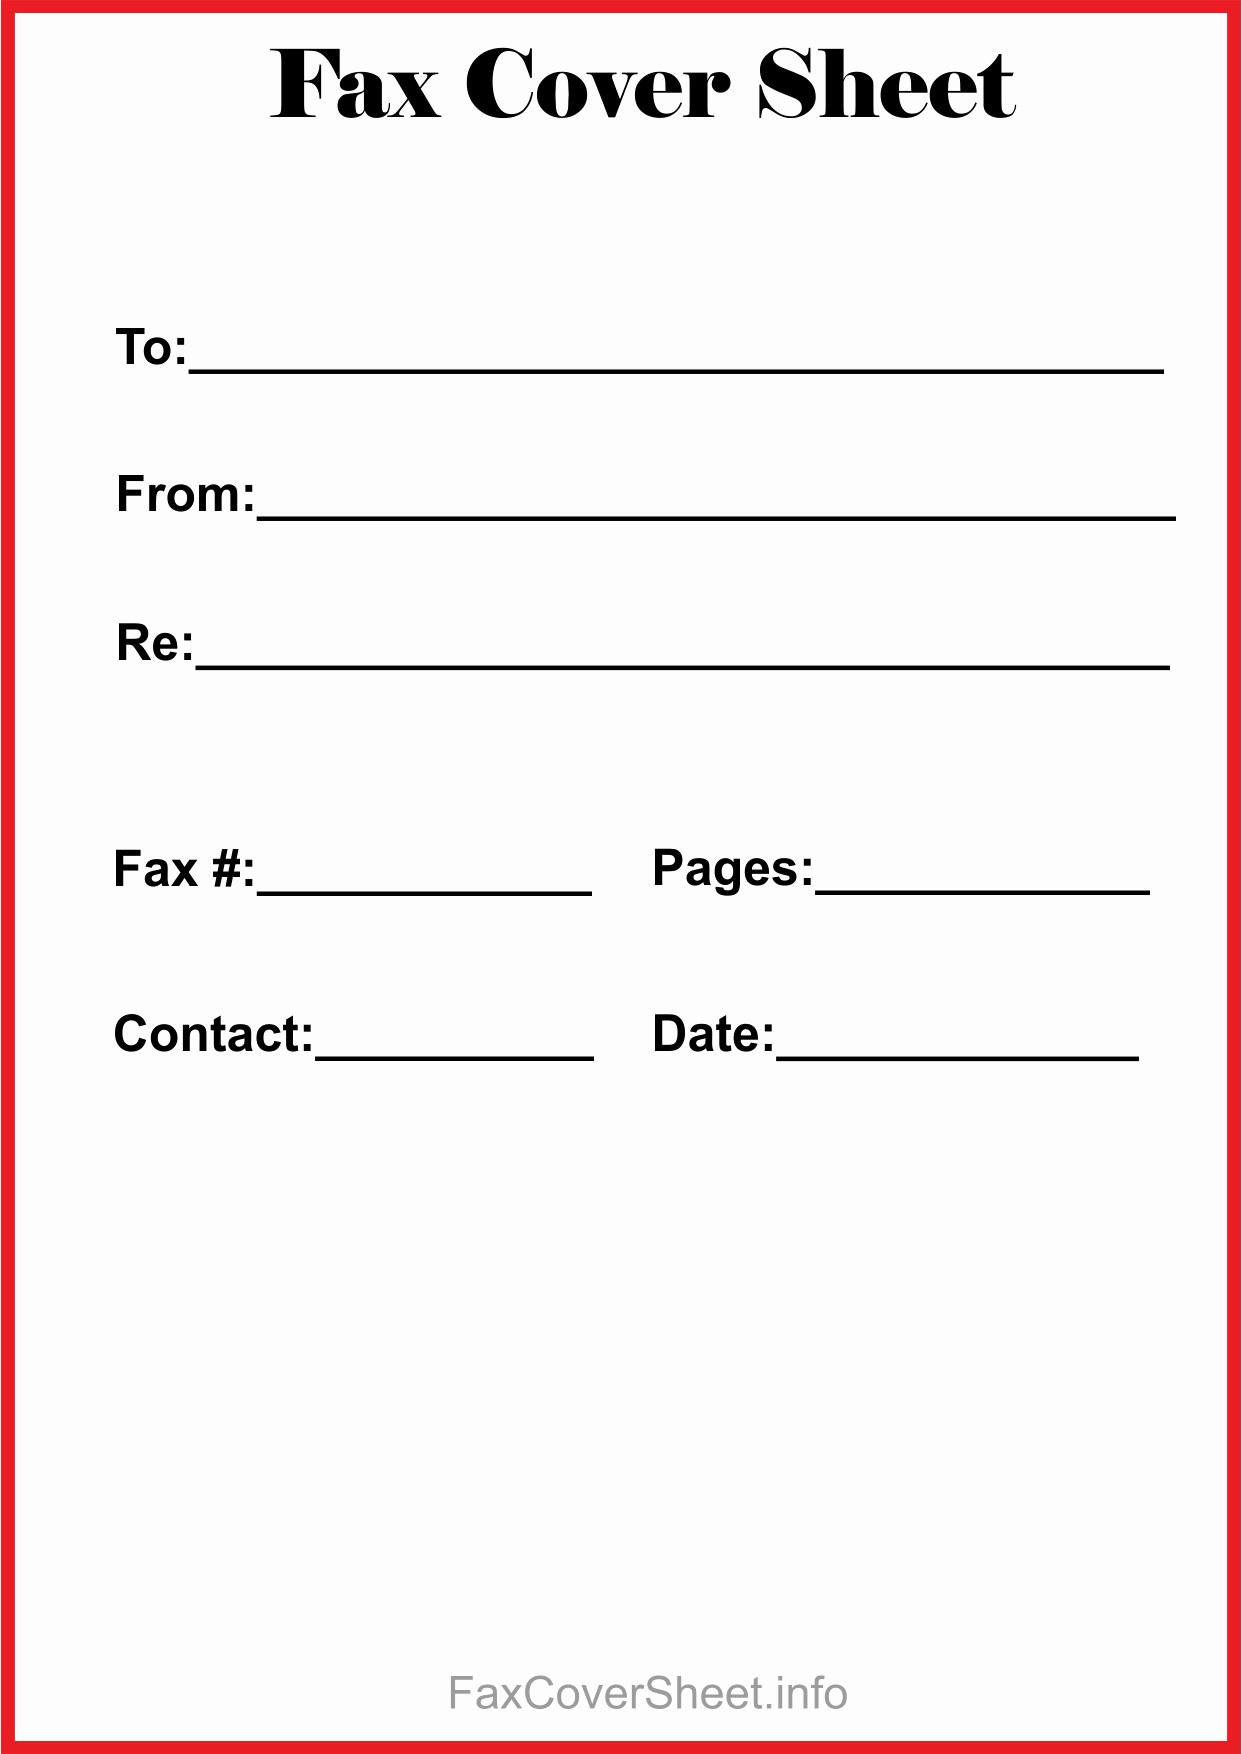 Cover Sheet for Fax Example Inspirational Free Fax Cover Sheet Template Download